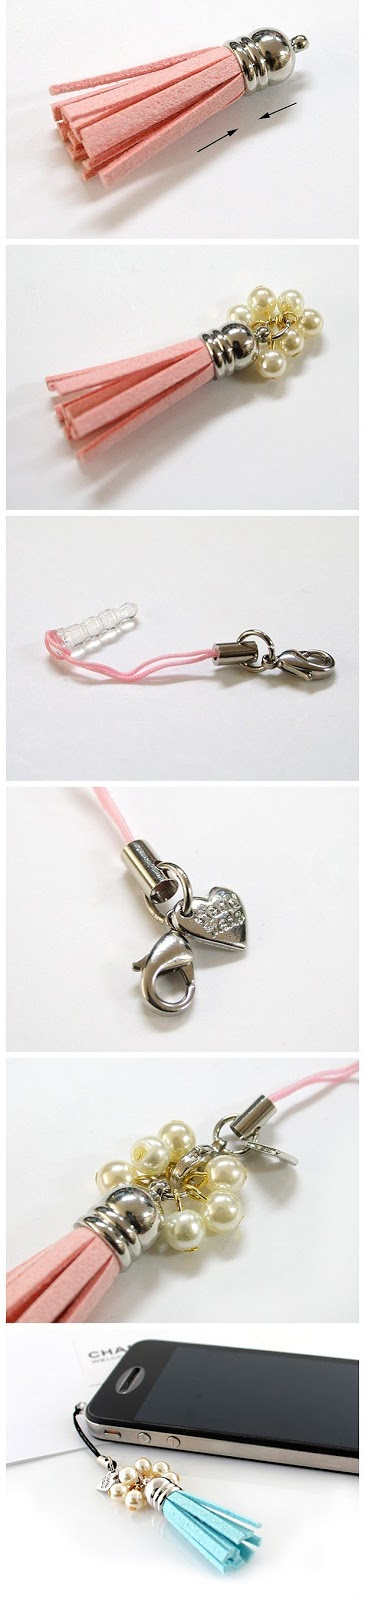 Diy- how to make leather charm, jewelry making step by step.